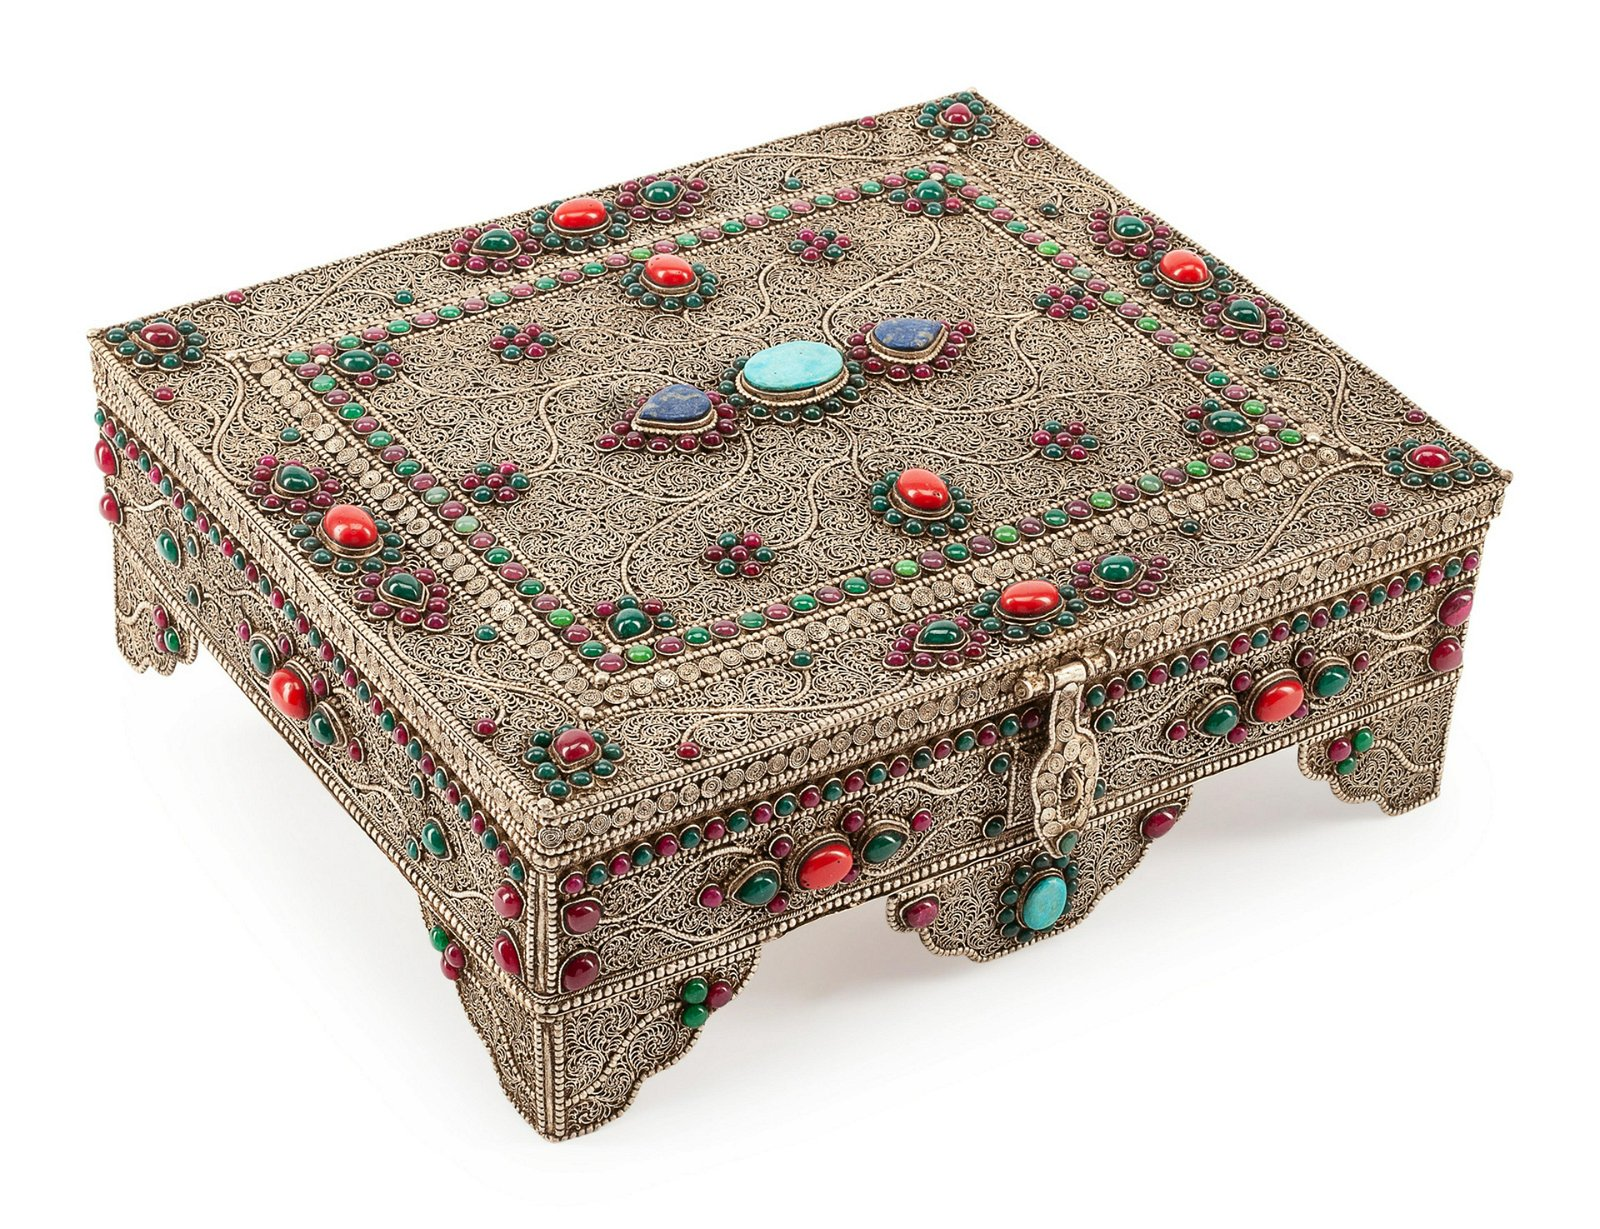 A Silver Filigree, Turquoise, Ruby and Enamel Box